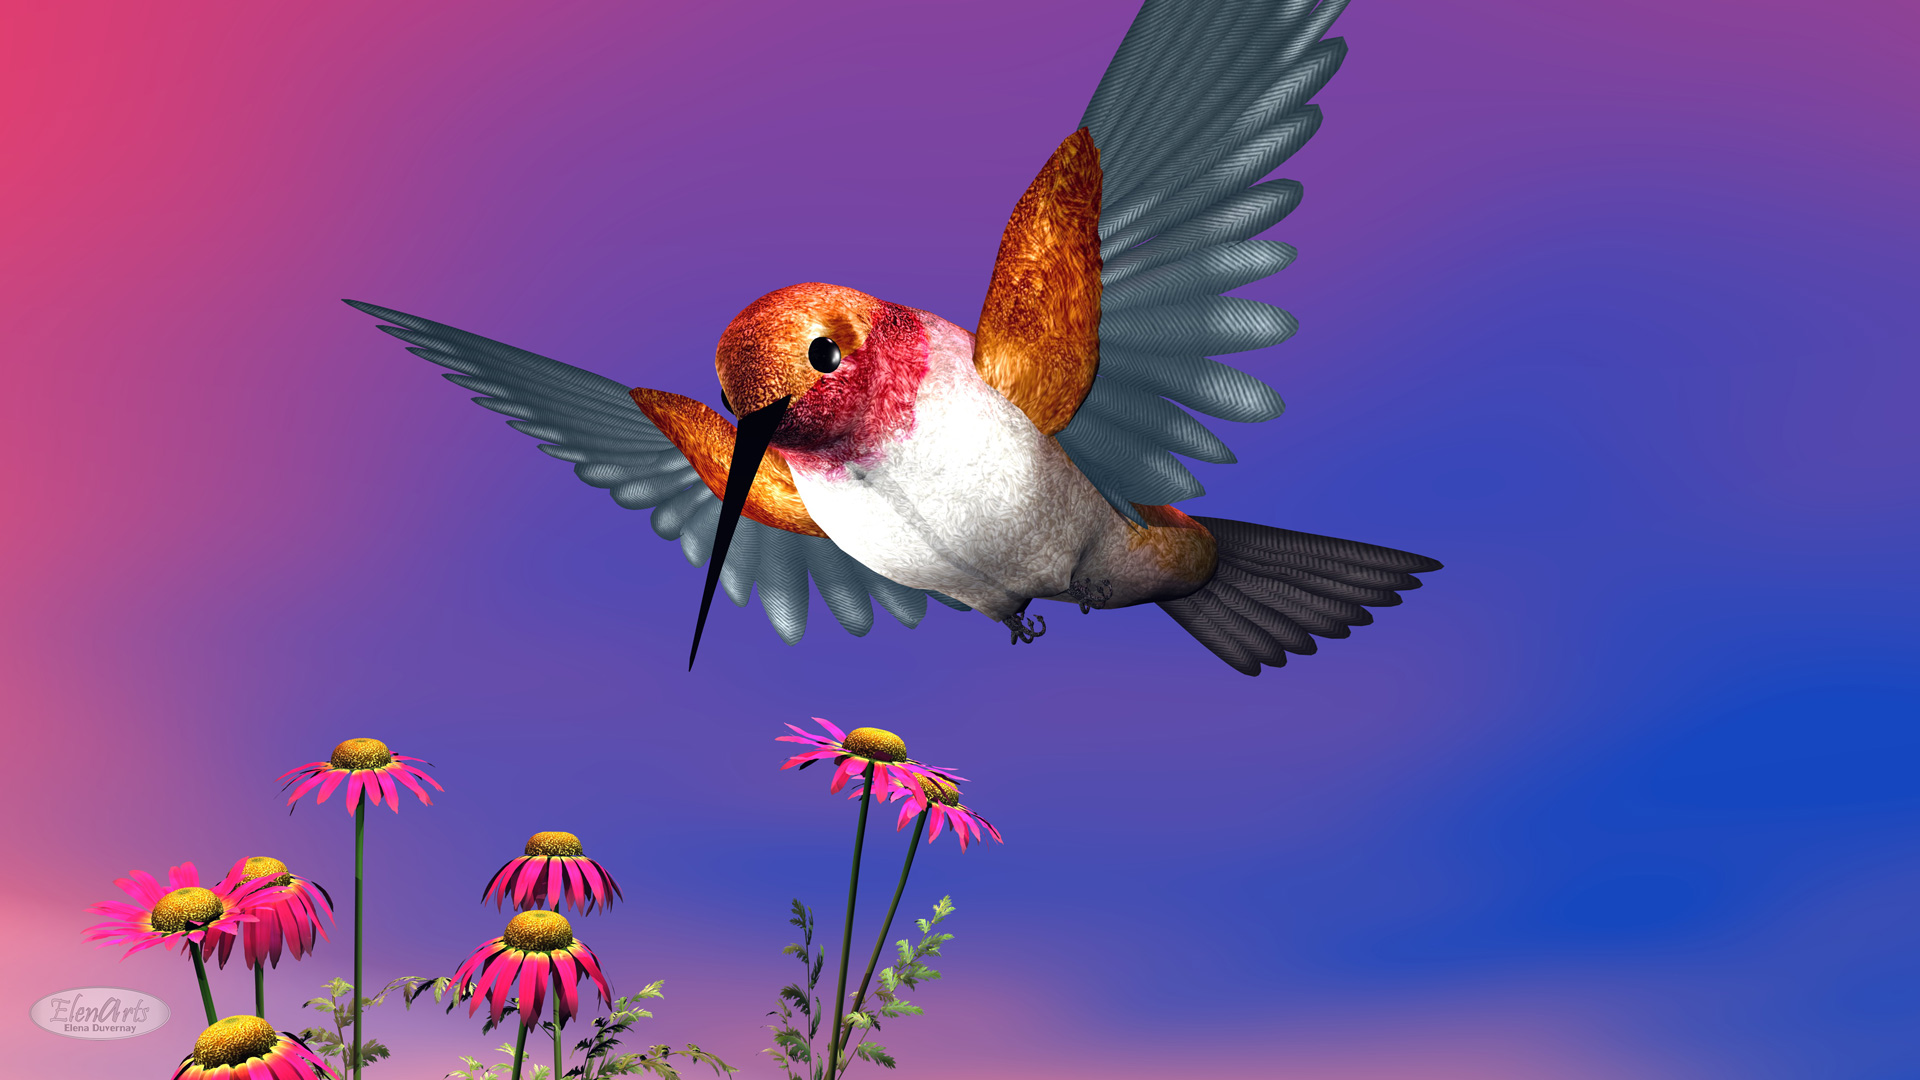 Rufous hummingbird flying upon red daisies by cloudy day - 3D render